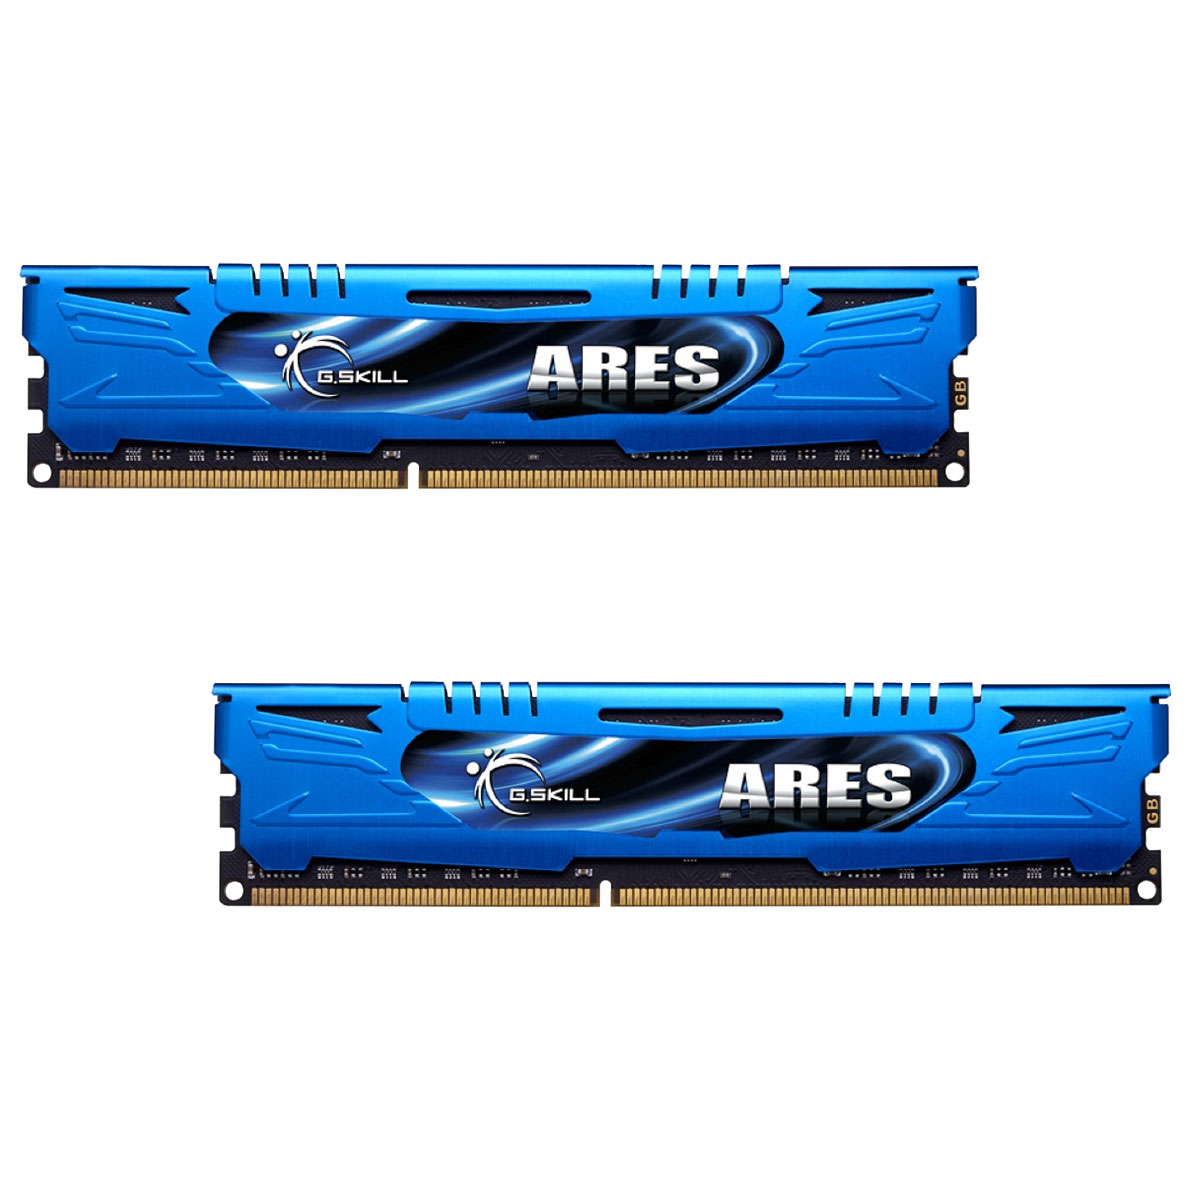 Mémoire PC G.Skill Ares Blue Series 8 Go (2 x 4 Go) DDR3 1600 MHz CL9 Kit Dual Channel DDR3 PC3-12800 - F3-1600C9D-8GAB (garantie à vie par G.Skill)